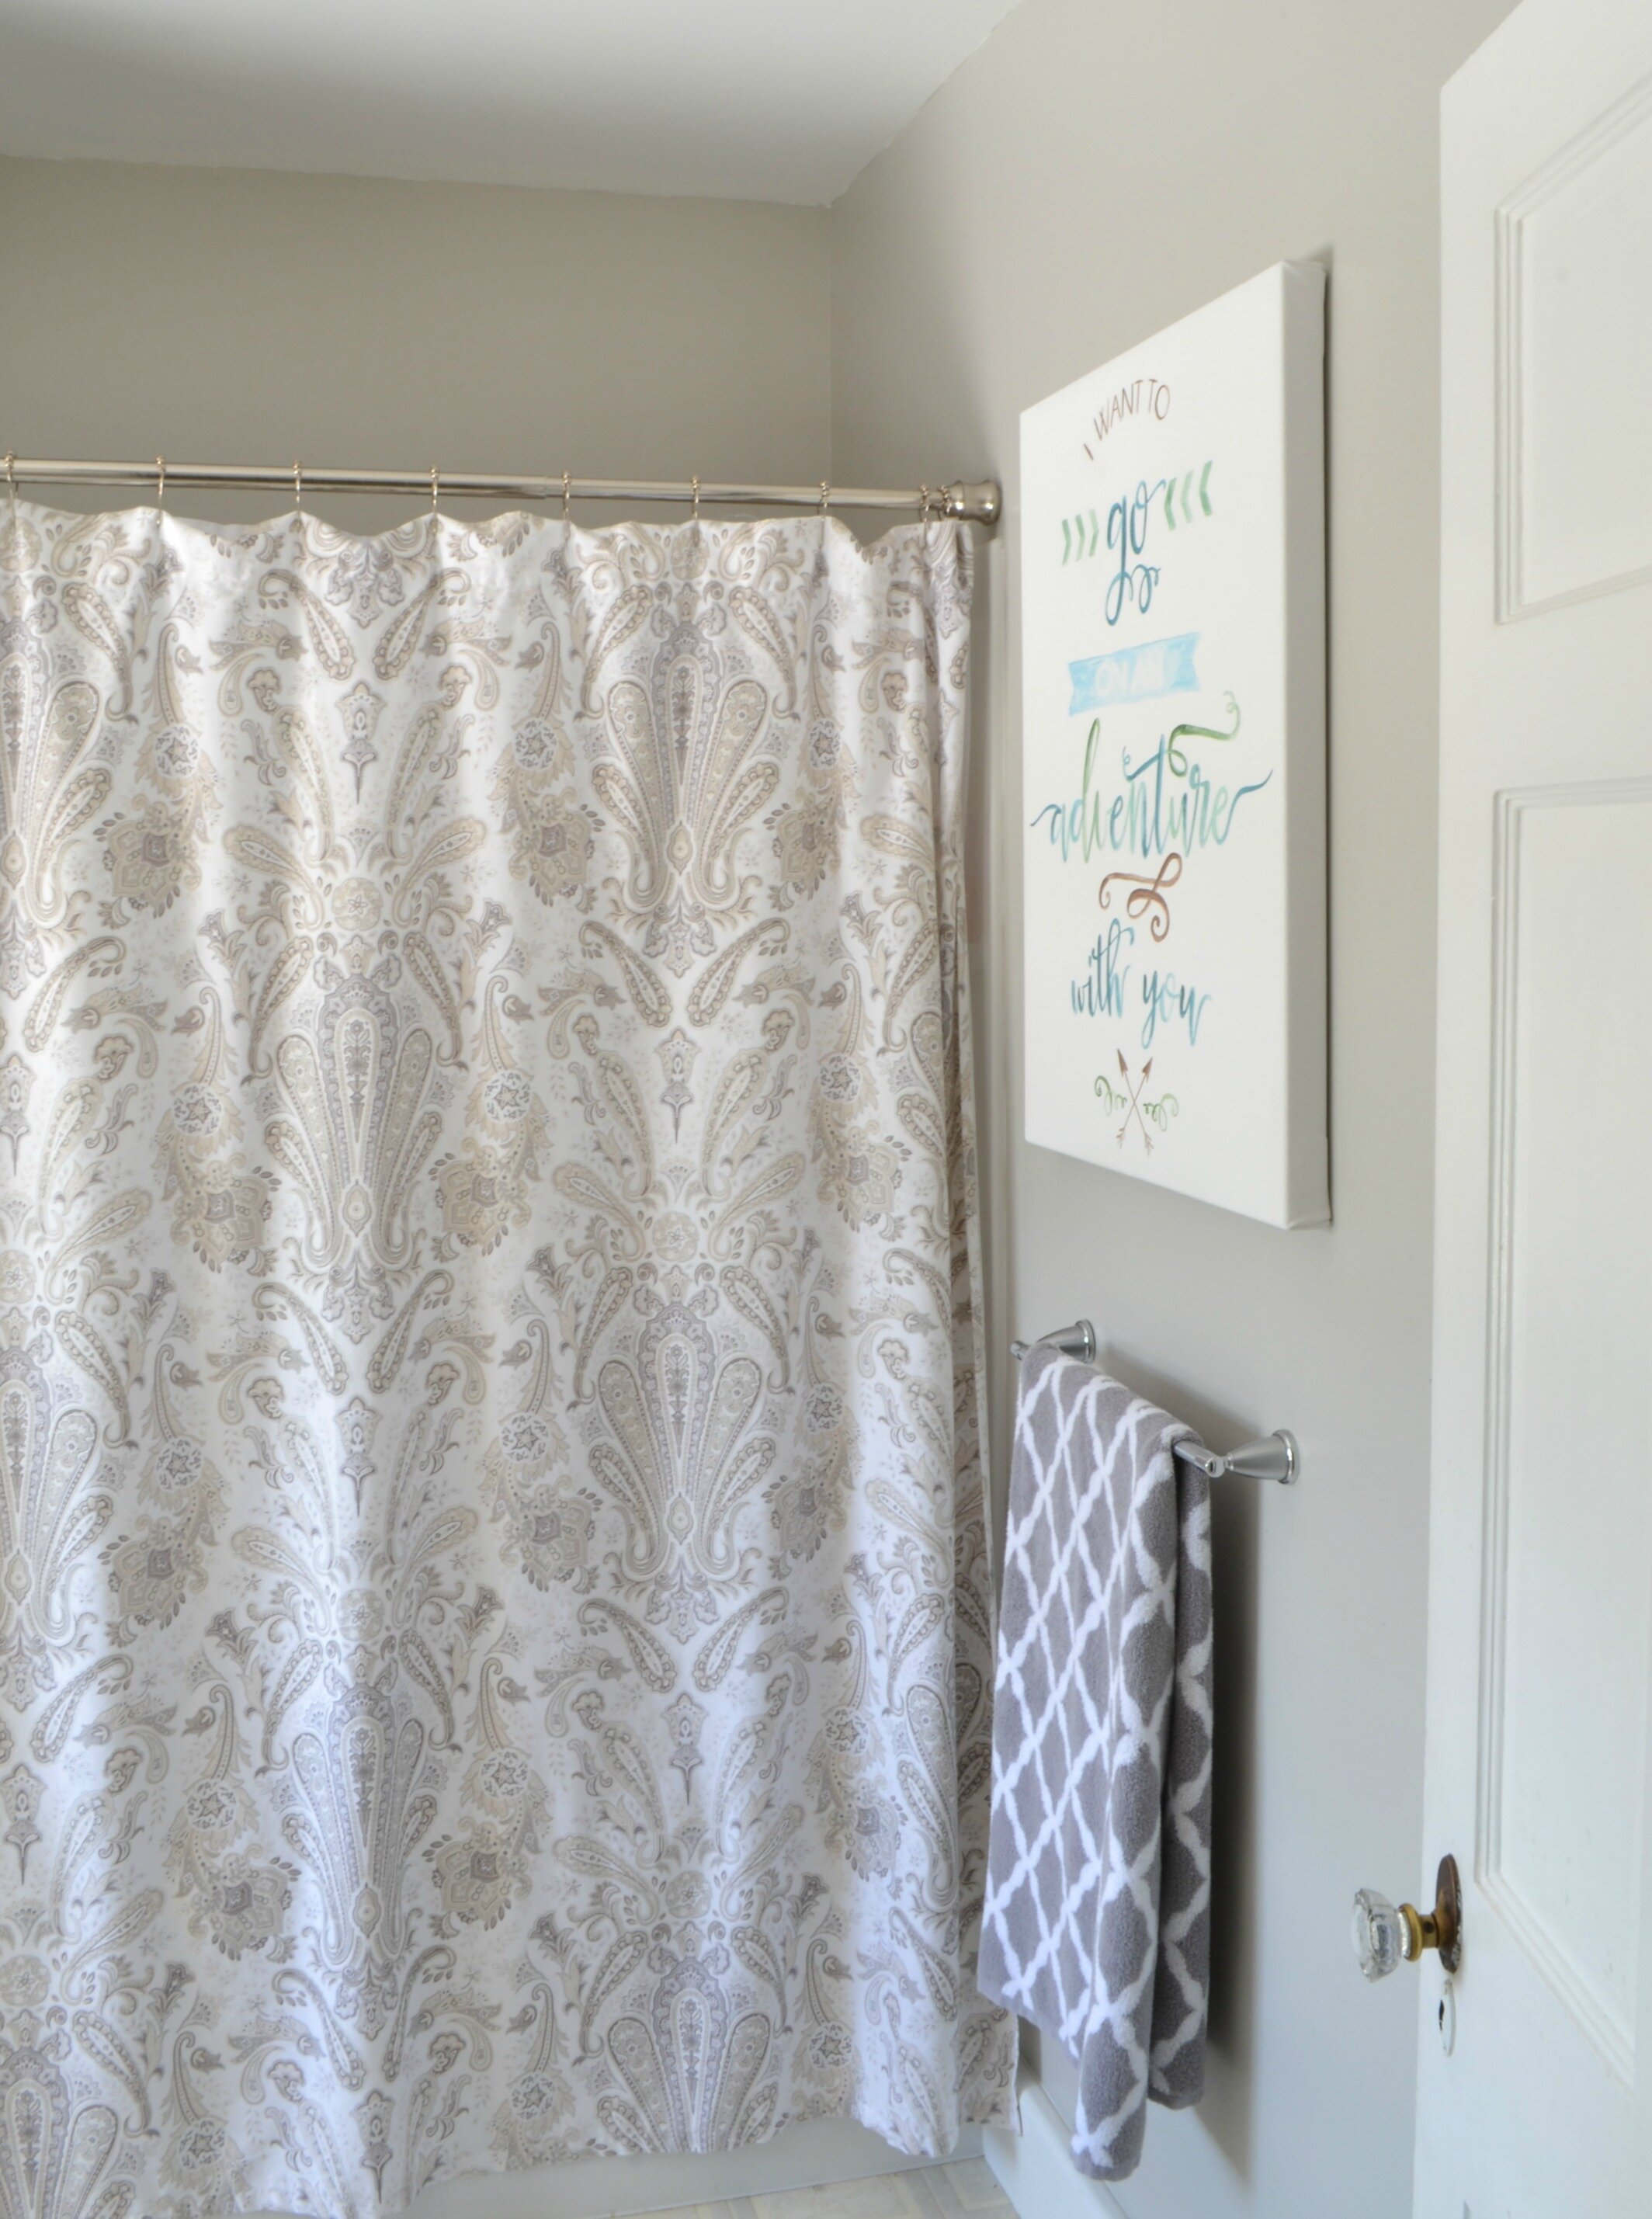 Curtain: Bathroom Curtain Rods | Restoration Hardware Shower ...